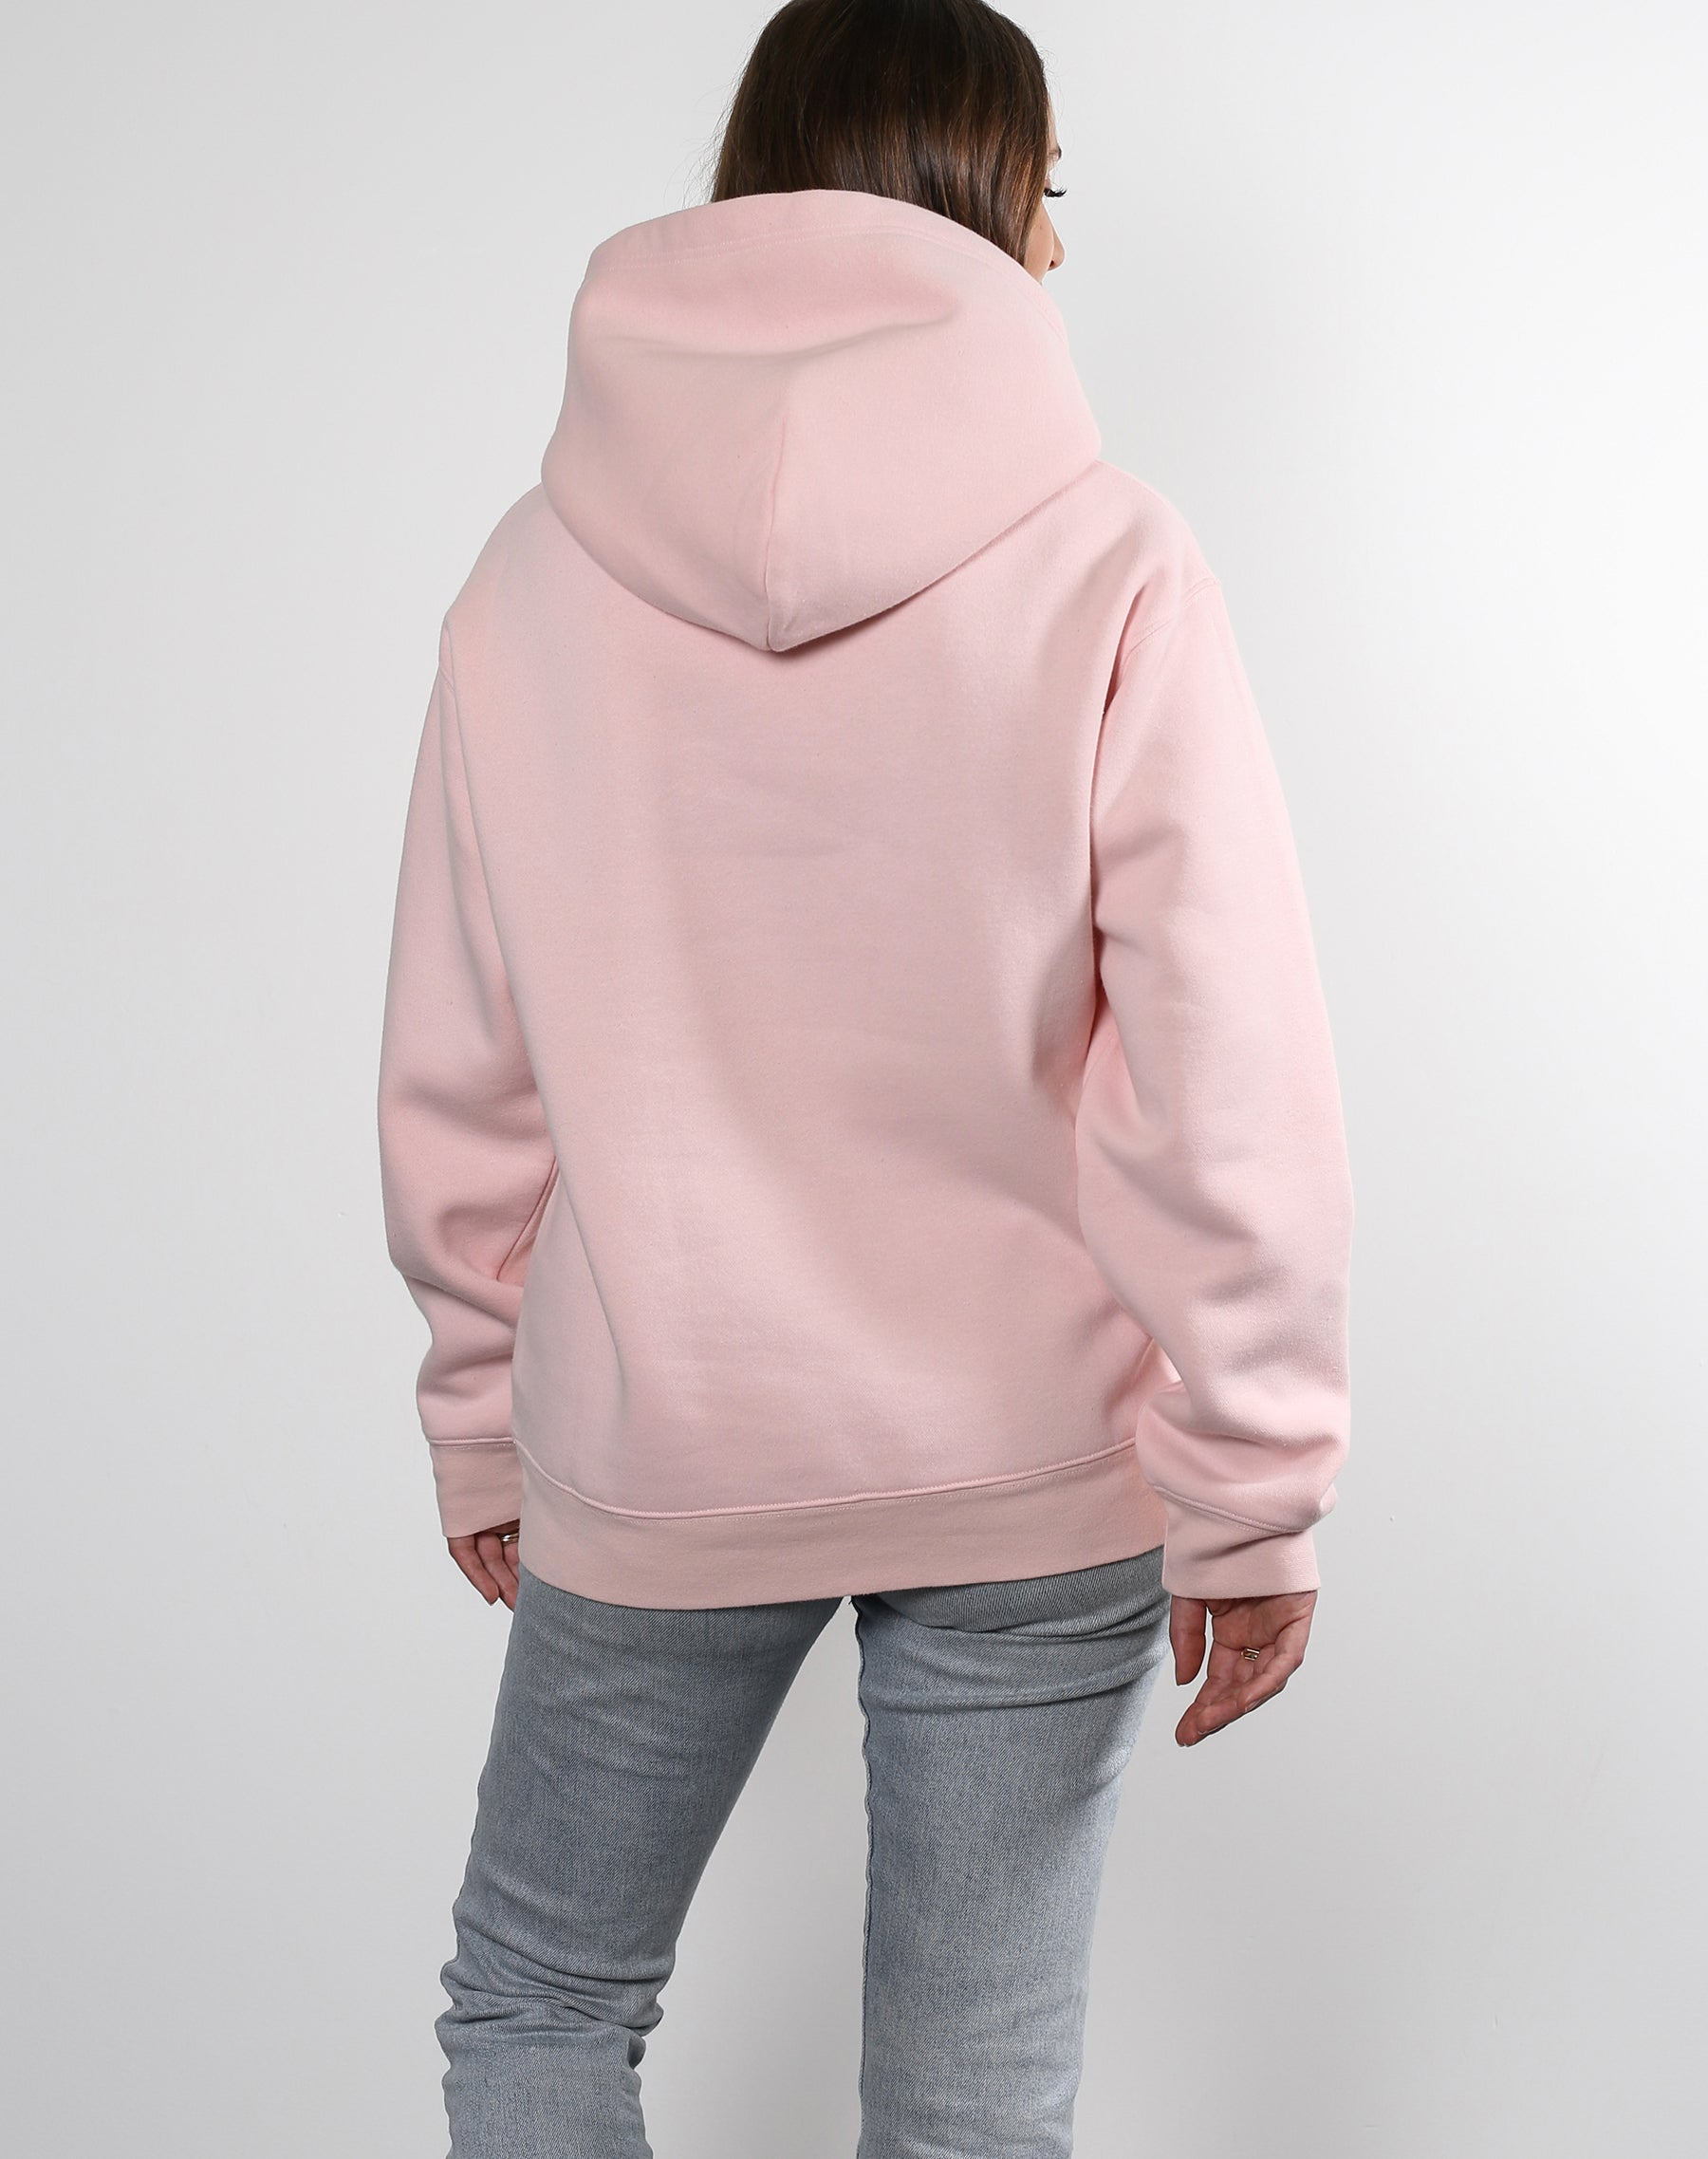 This is an Ecommerce photo of a model wearing the Brunette Classic Hoodie in Ballet Slipper by Brunette the Label